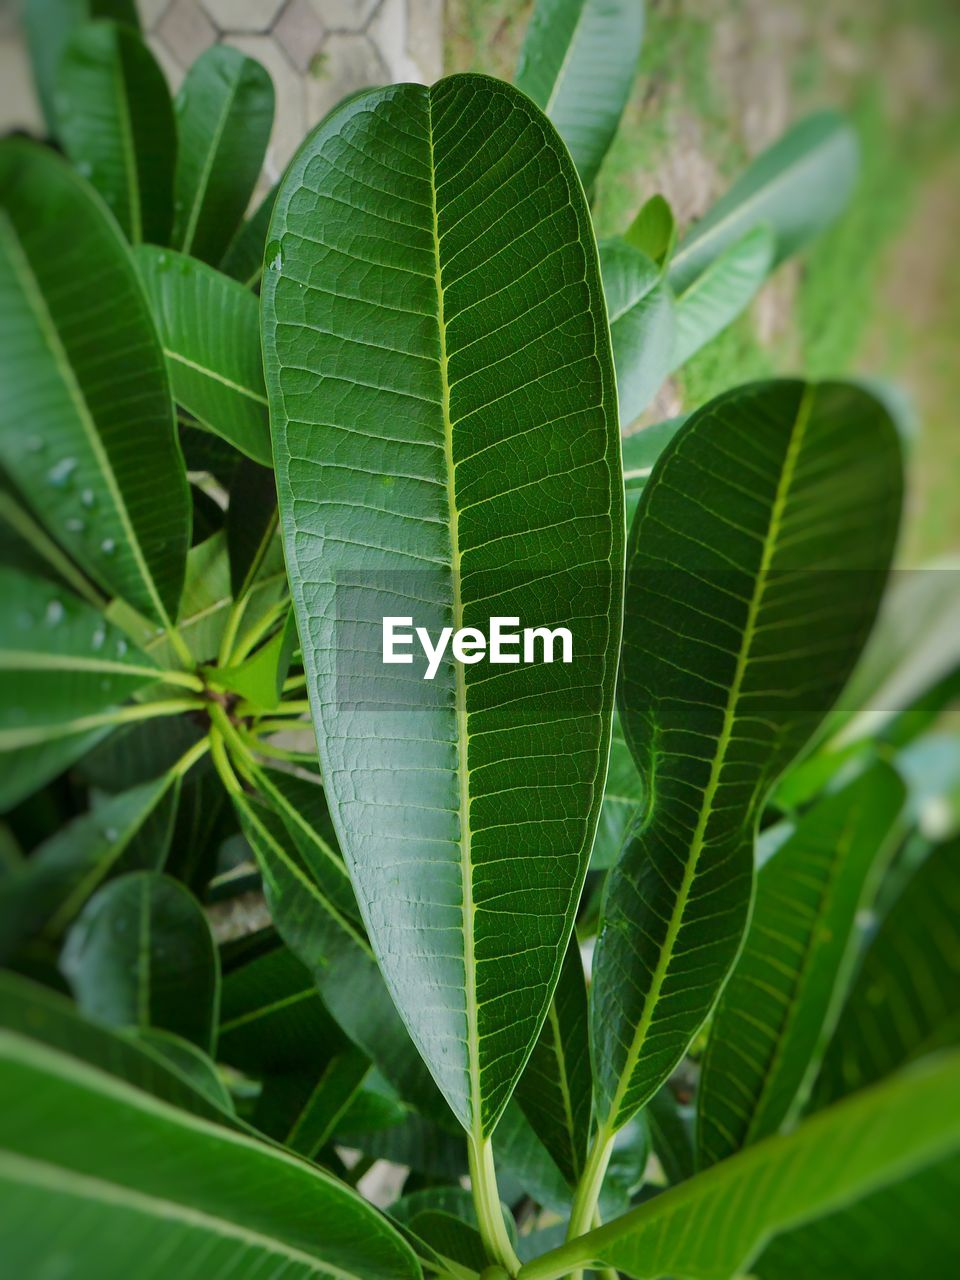 leaf, plant part, green color, plant, growth, close-up, nature, beauty in nature, leaf vein, day, no people, outdoors, leaves, focus on foreground, selective focus, freshness, botany, natural pattern, high angle view, tranquility